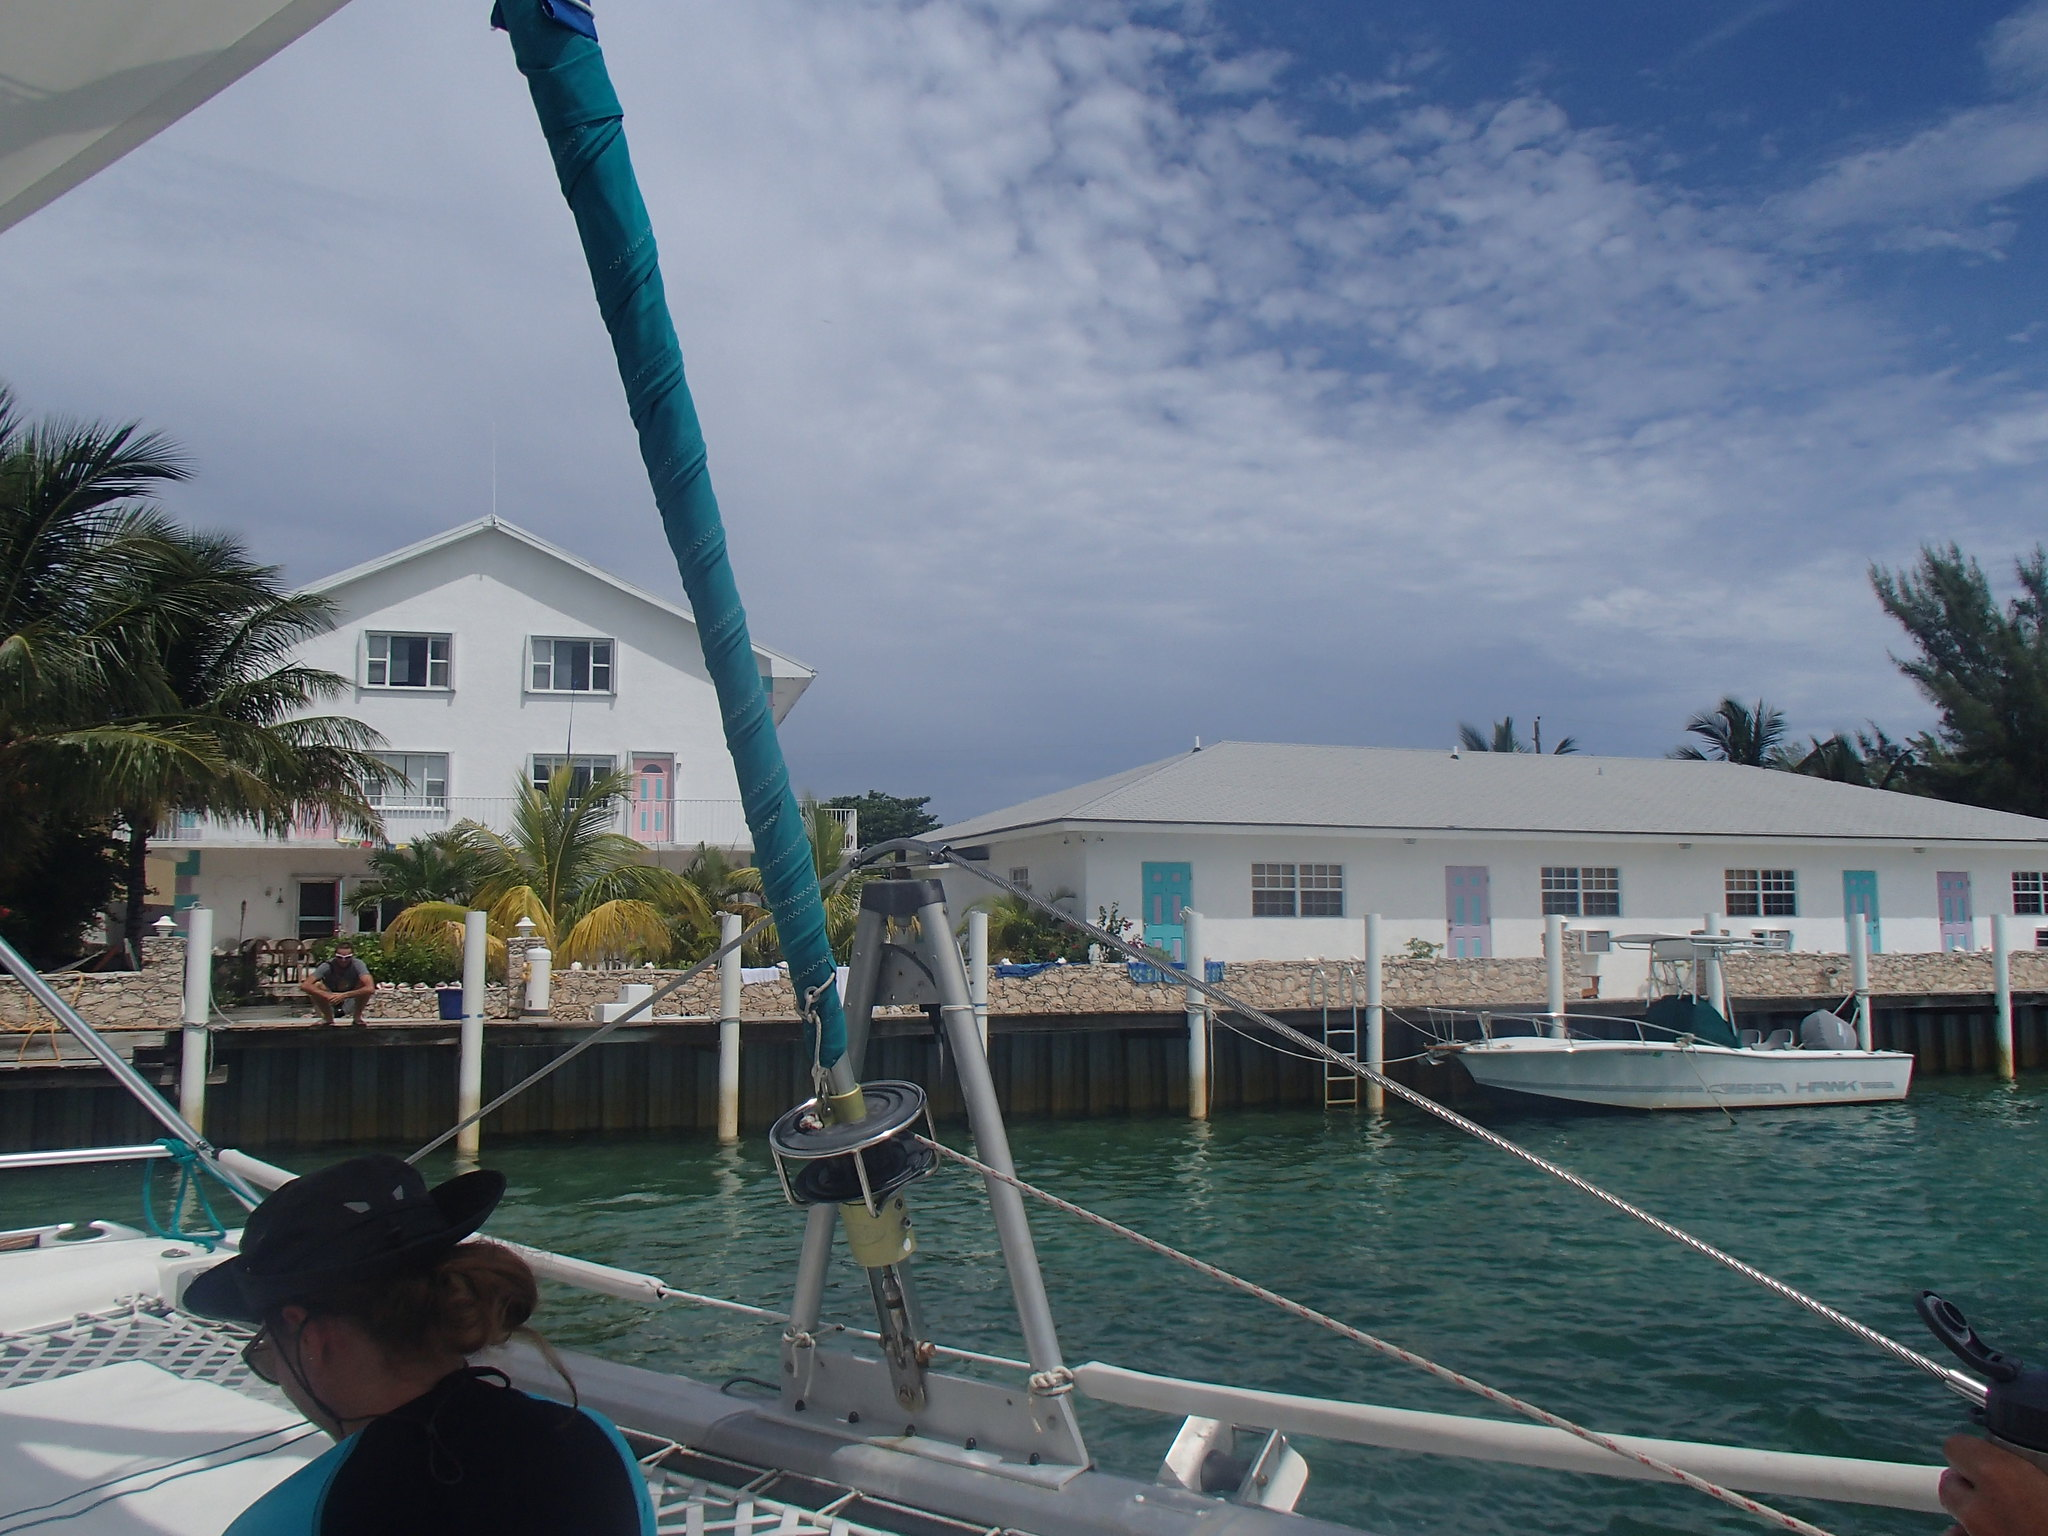 The WildQuest base as seen from the boat